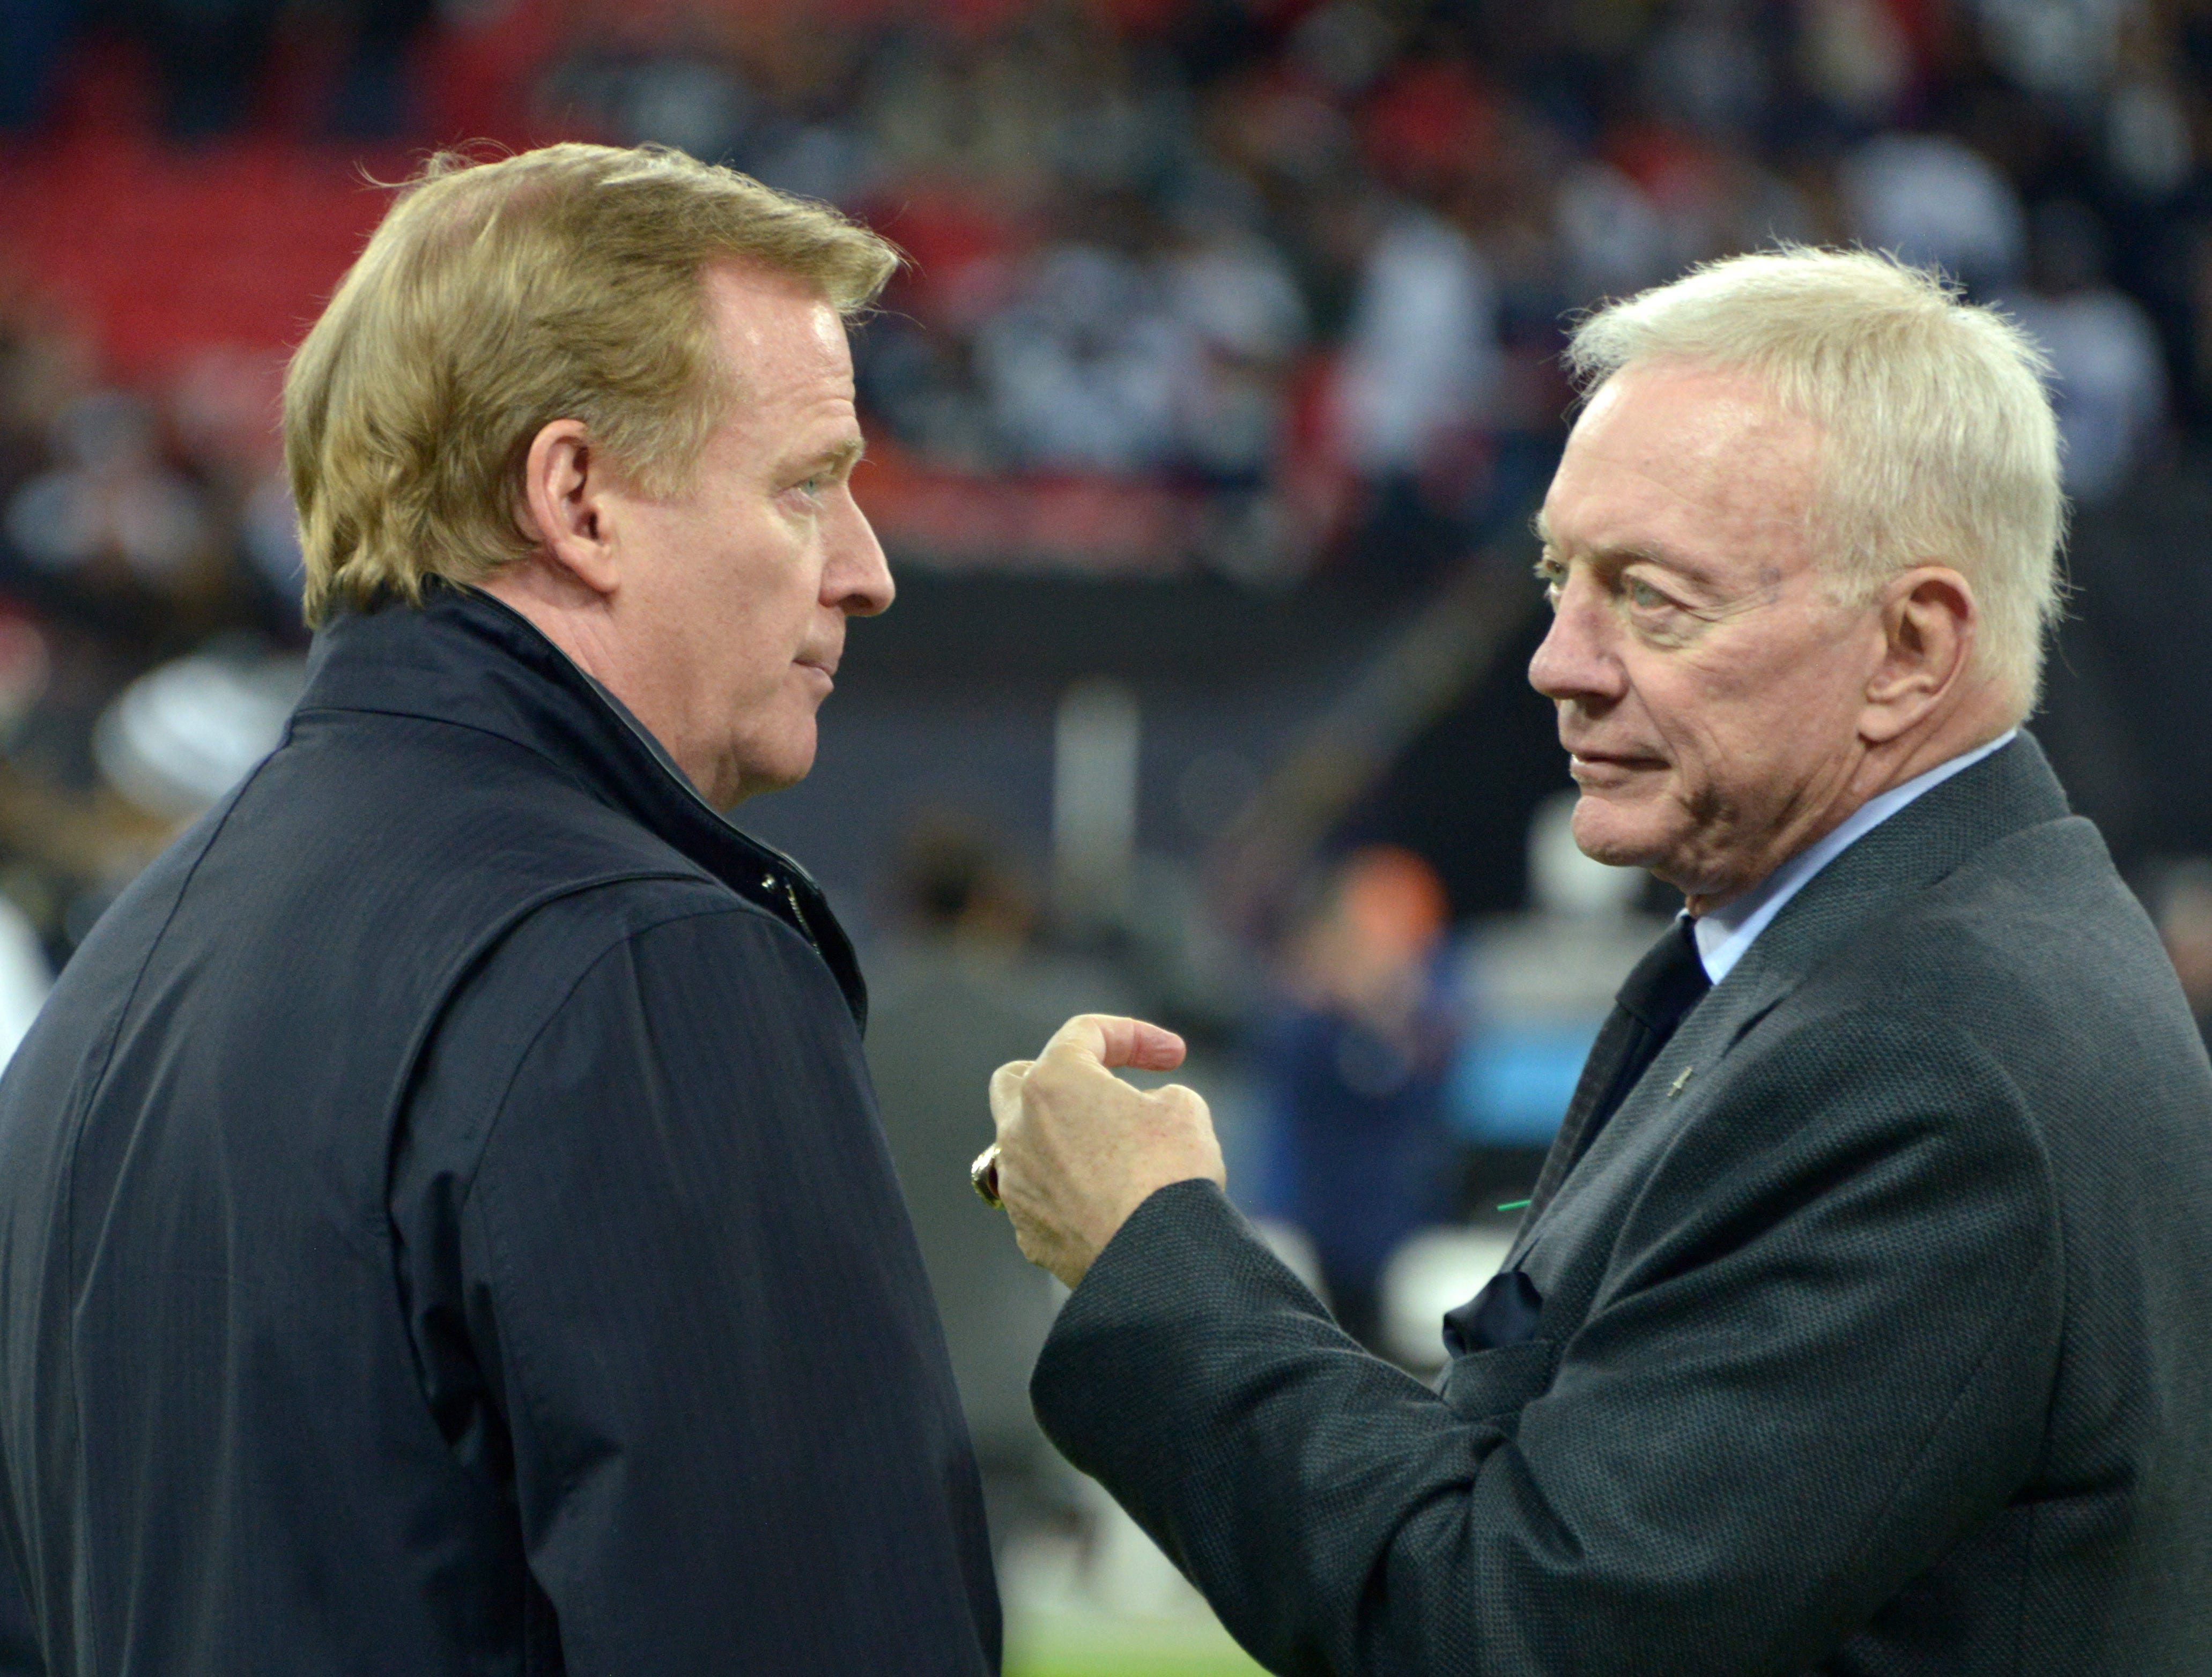 Report: Jerry Jones threatened to 'come after' NFL commissioner Roger Goodell